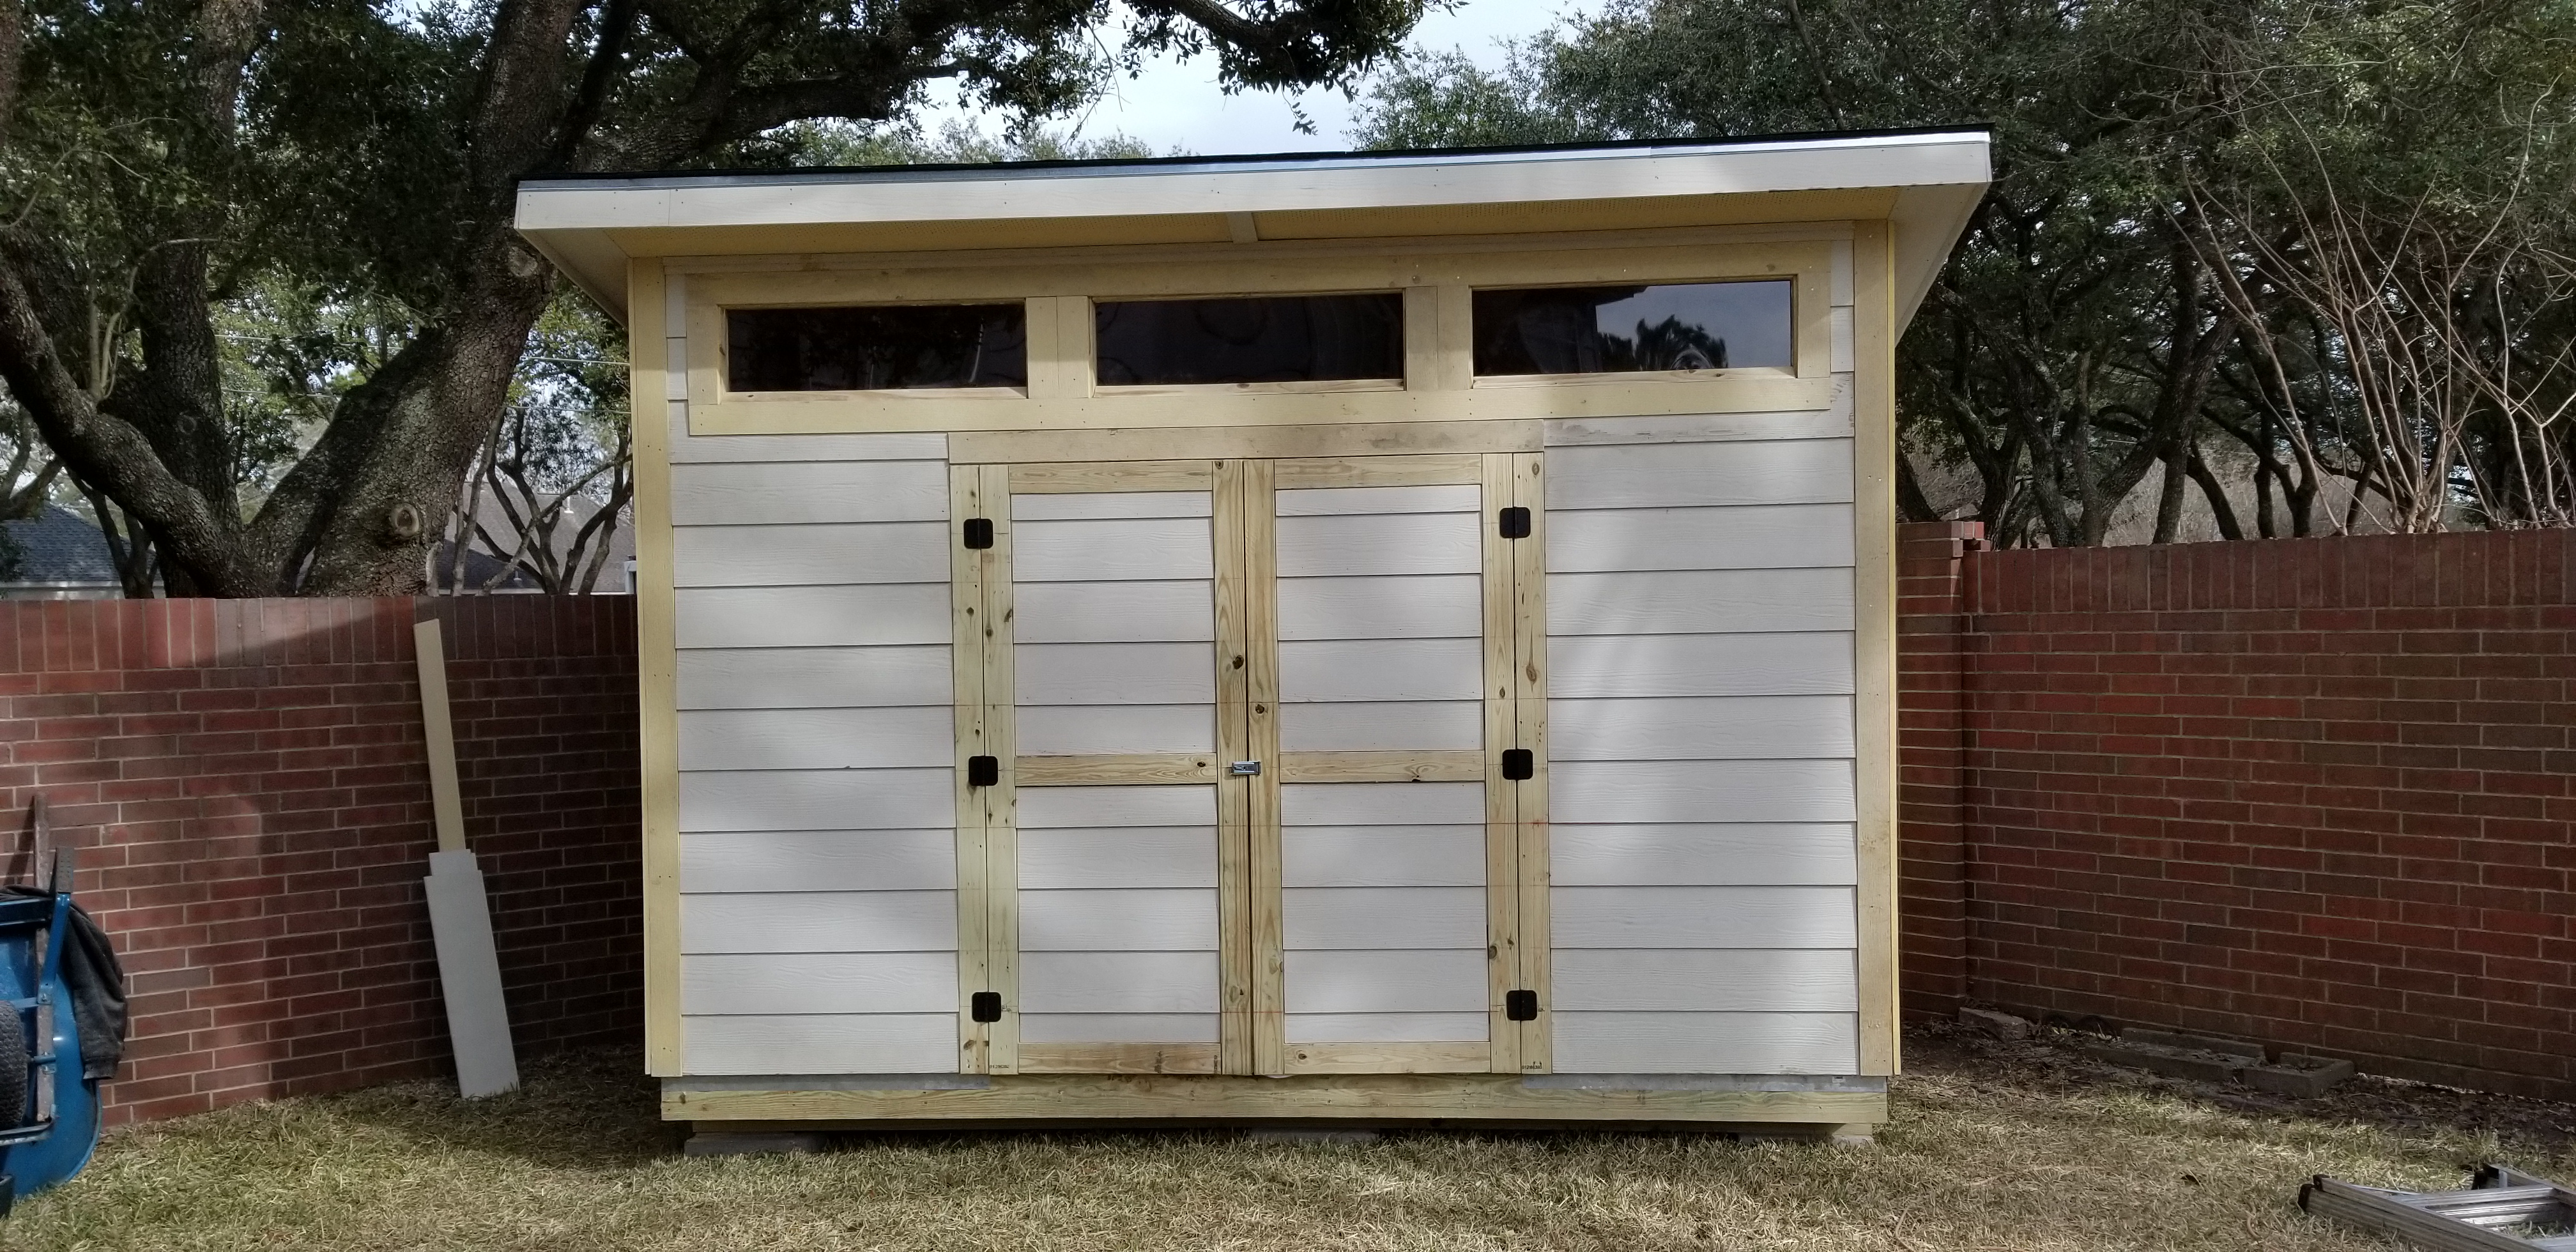 garden sheds kit barn attachment kits storage style diy wood shed